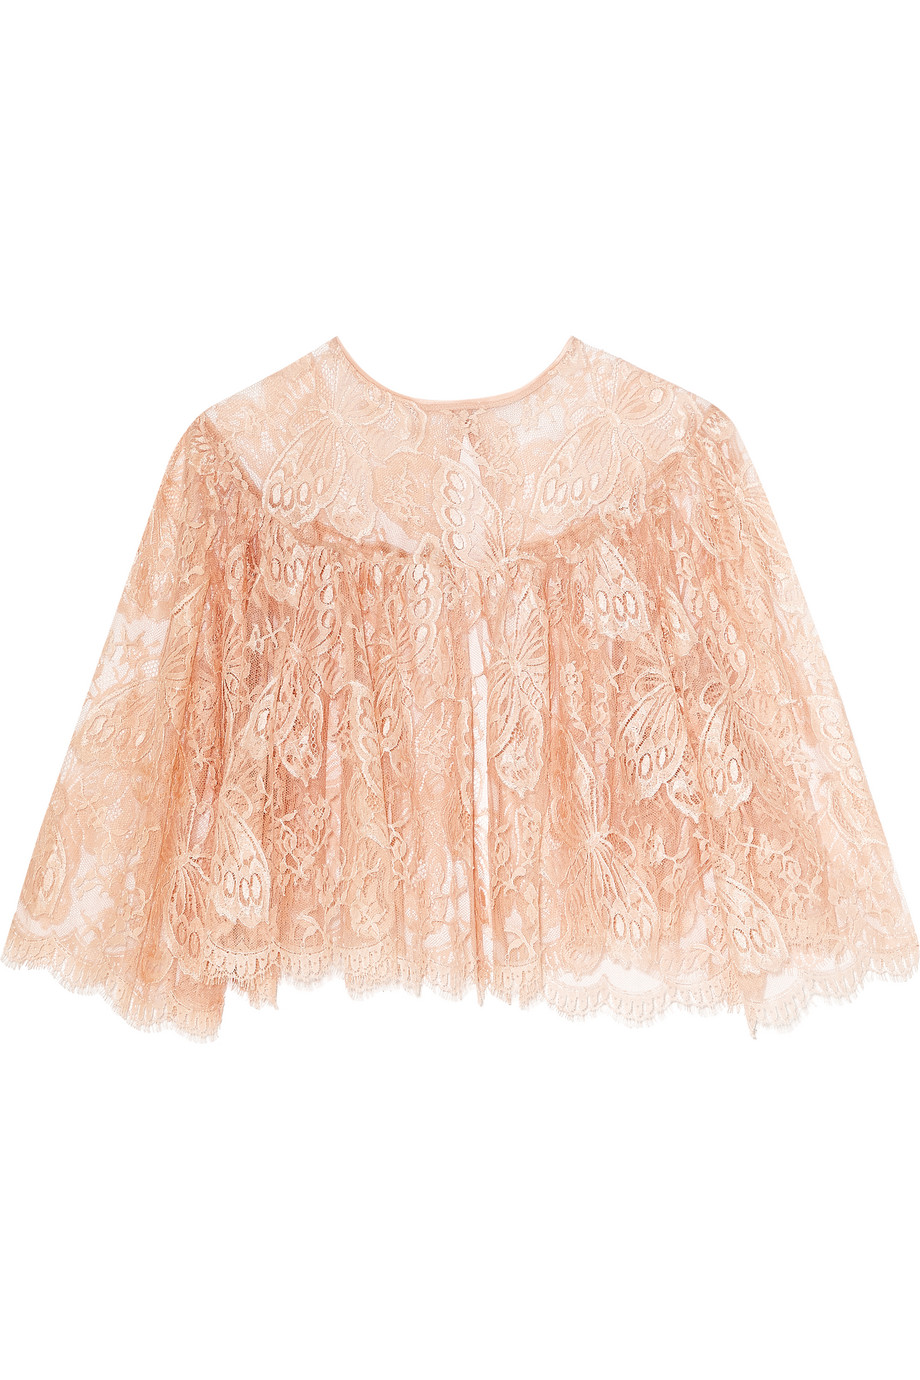 I.D. Sarrieri Passiflora Chantilly Lace and Tulle Bed Jacket, Peach, Women's, Size: XS